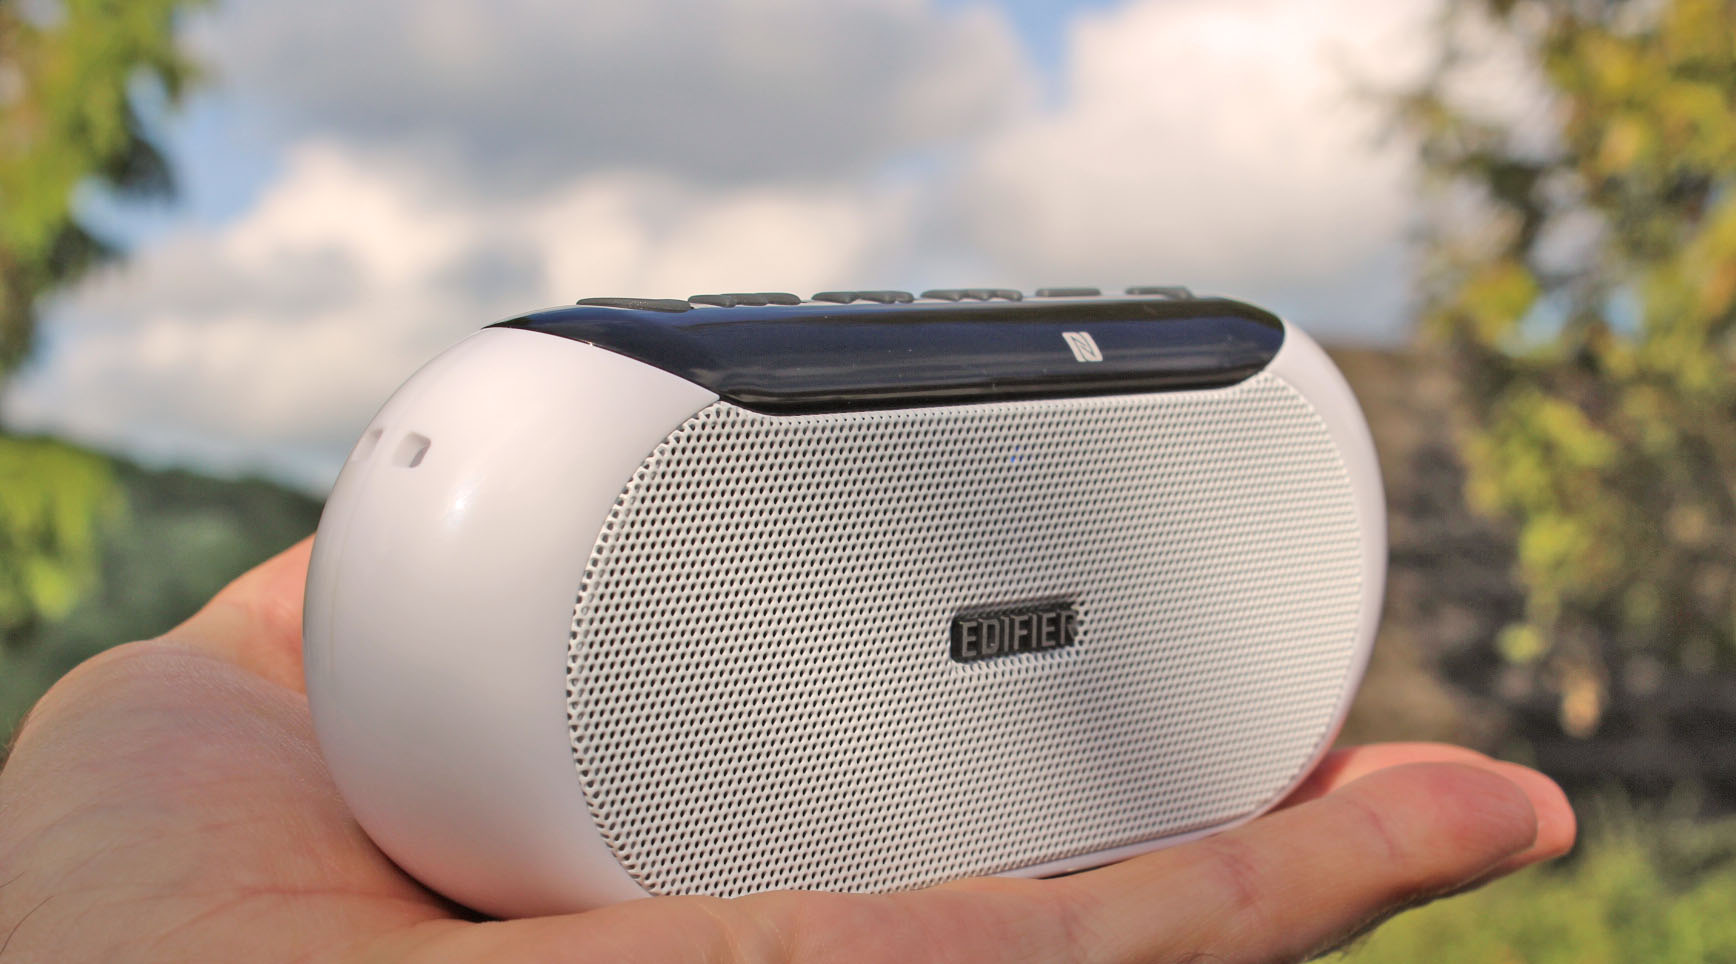 Edifier, Edifier MP211, wireless speaker, dd blog uk, dad bloguk.com, stereo equipment reviews